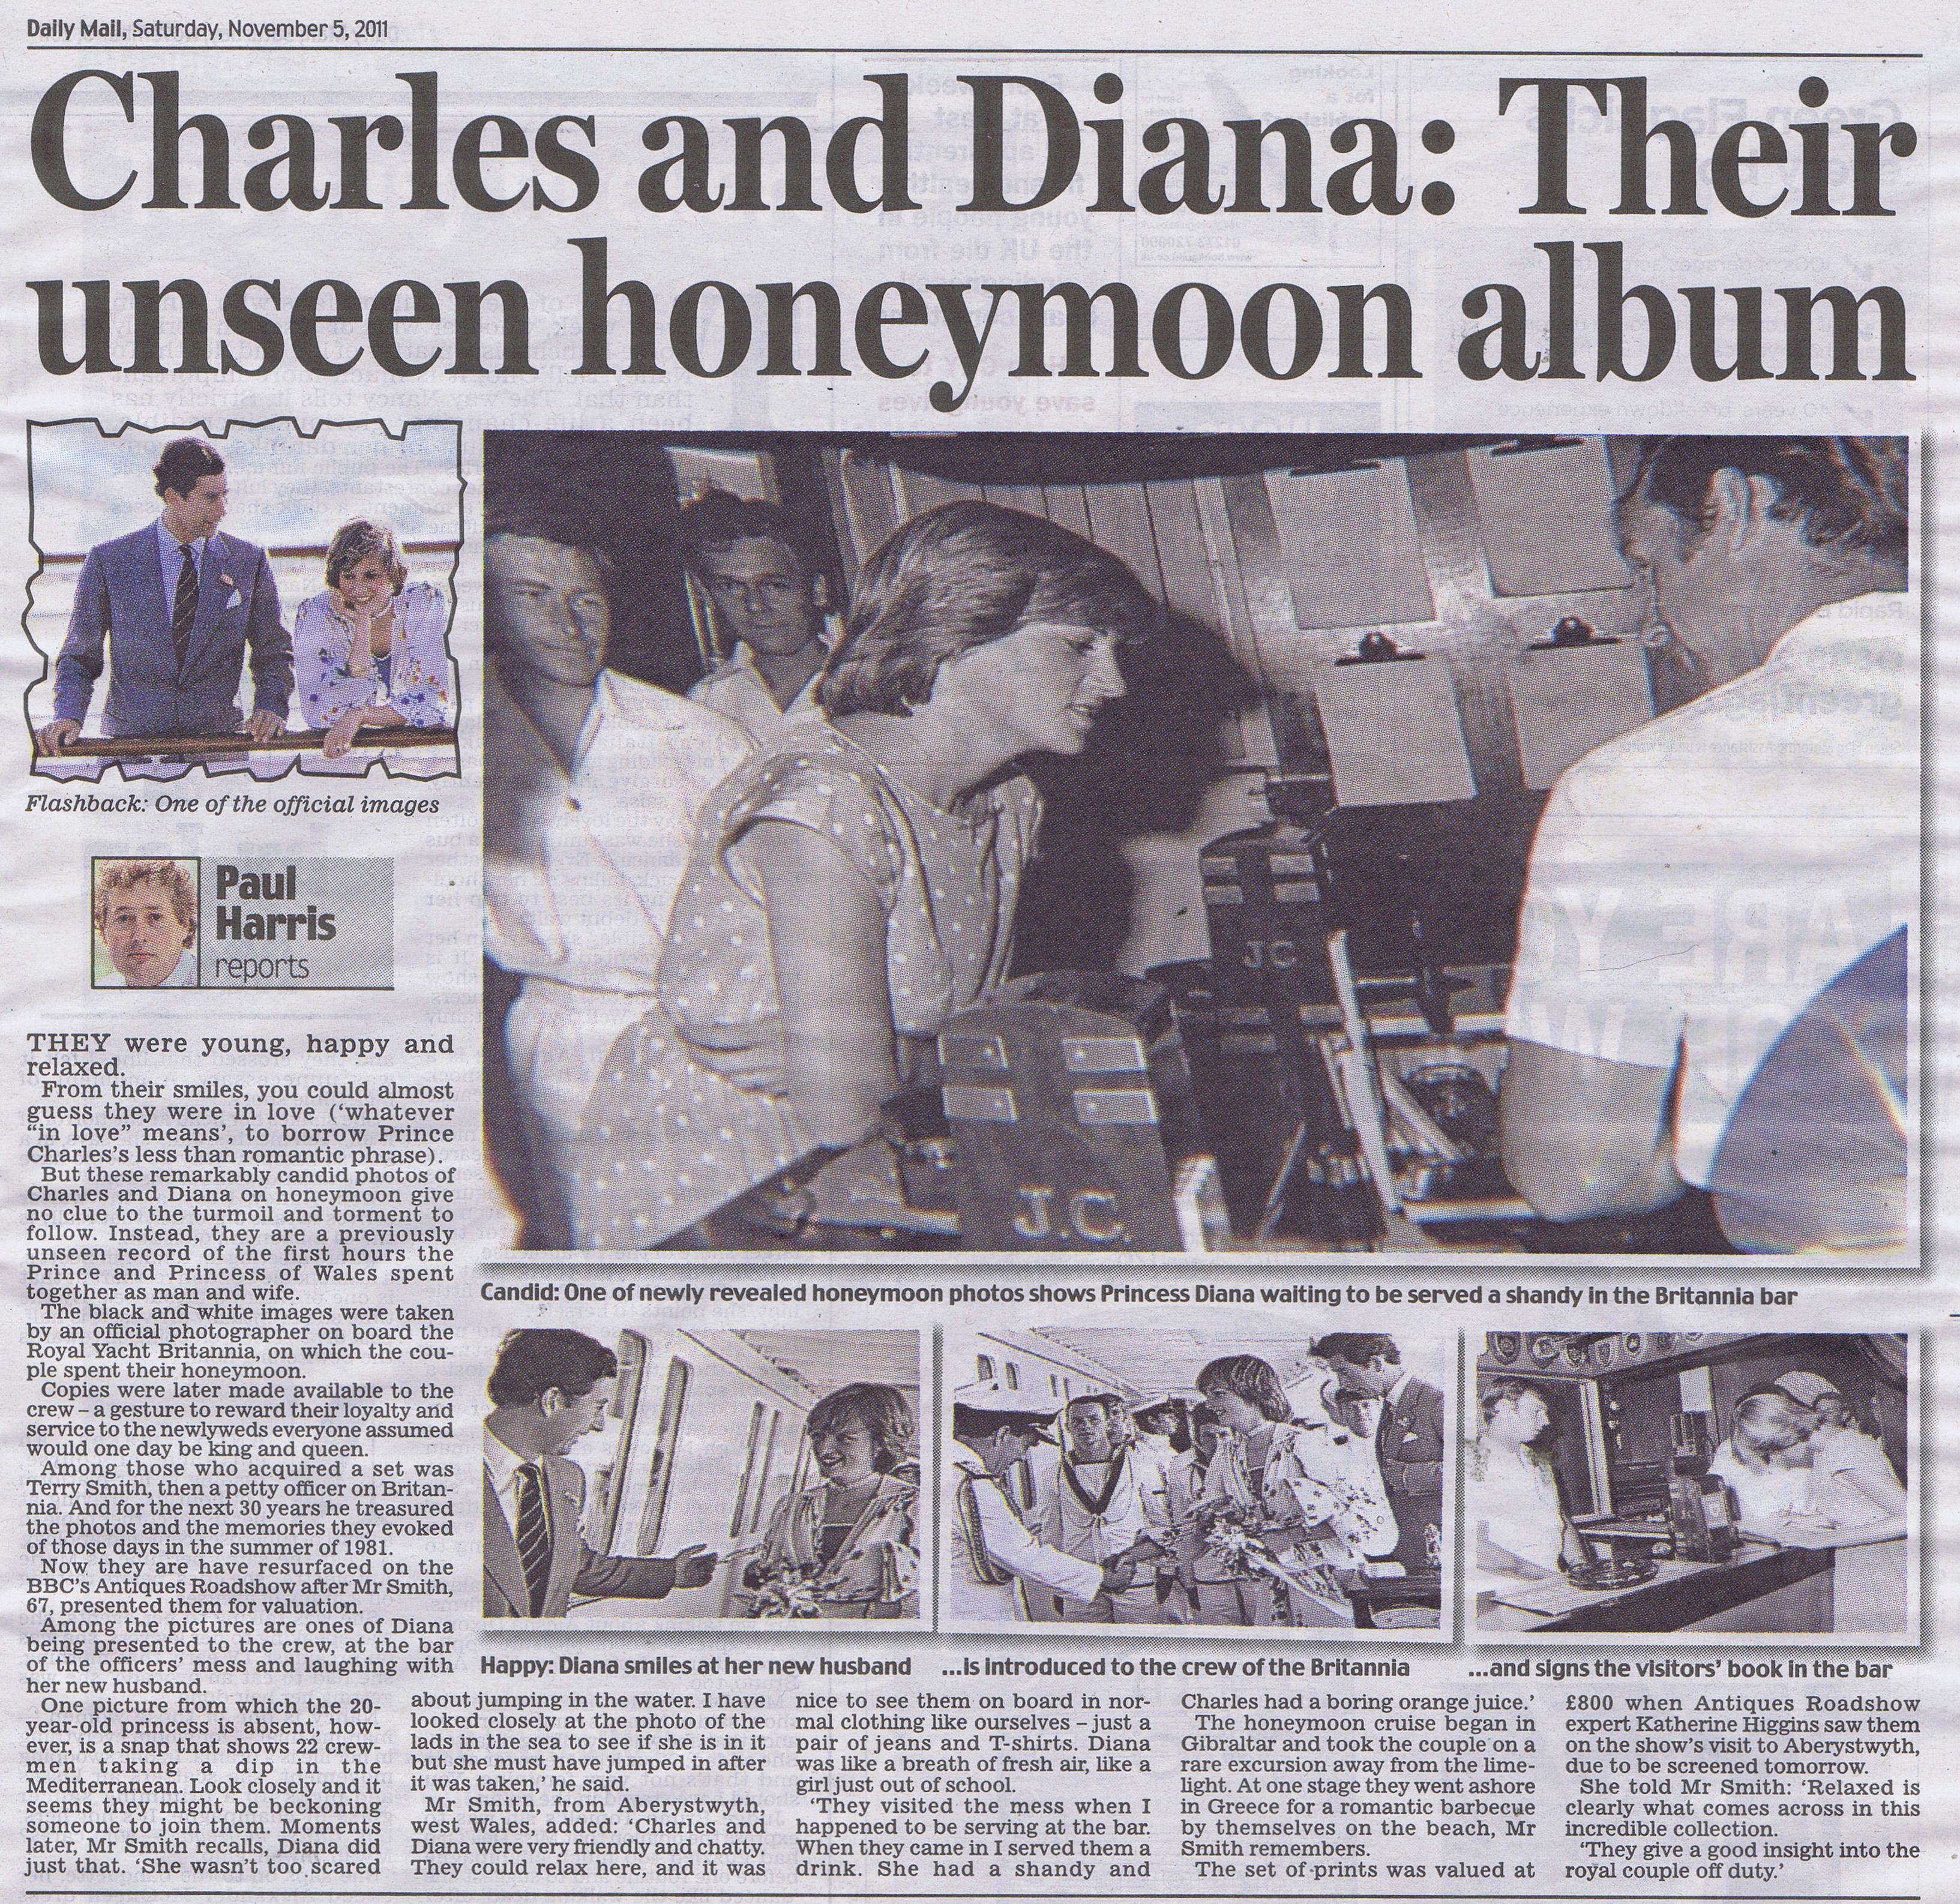 August, 1981 Princess Diana on her honeymoon aboard the